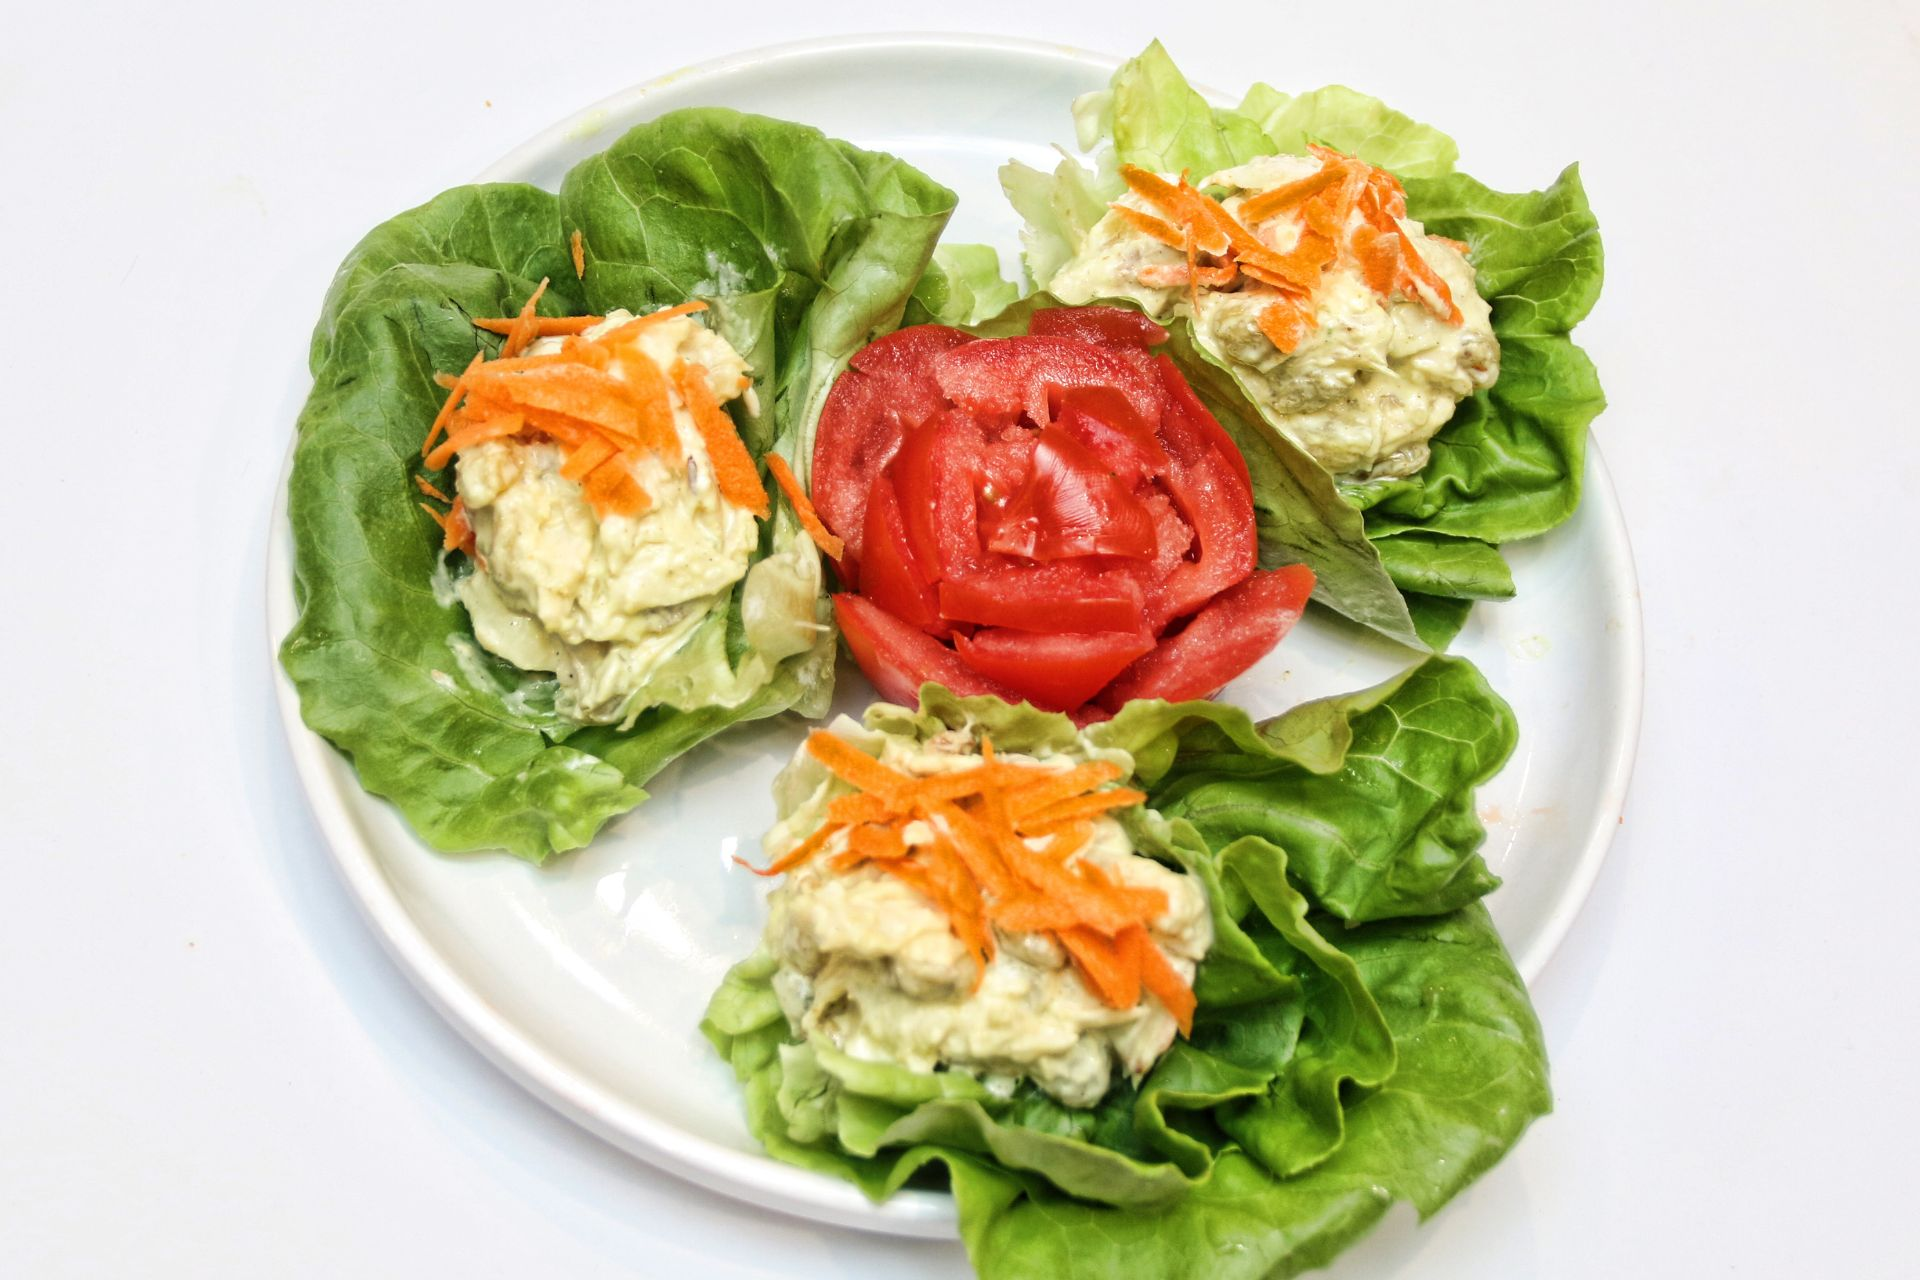 Chicken salad on beds of lettuce topped with shredded carrots and a sliced tomato